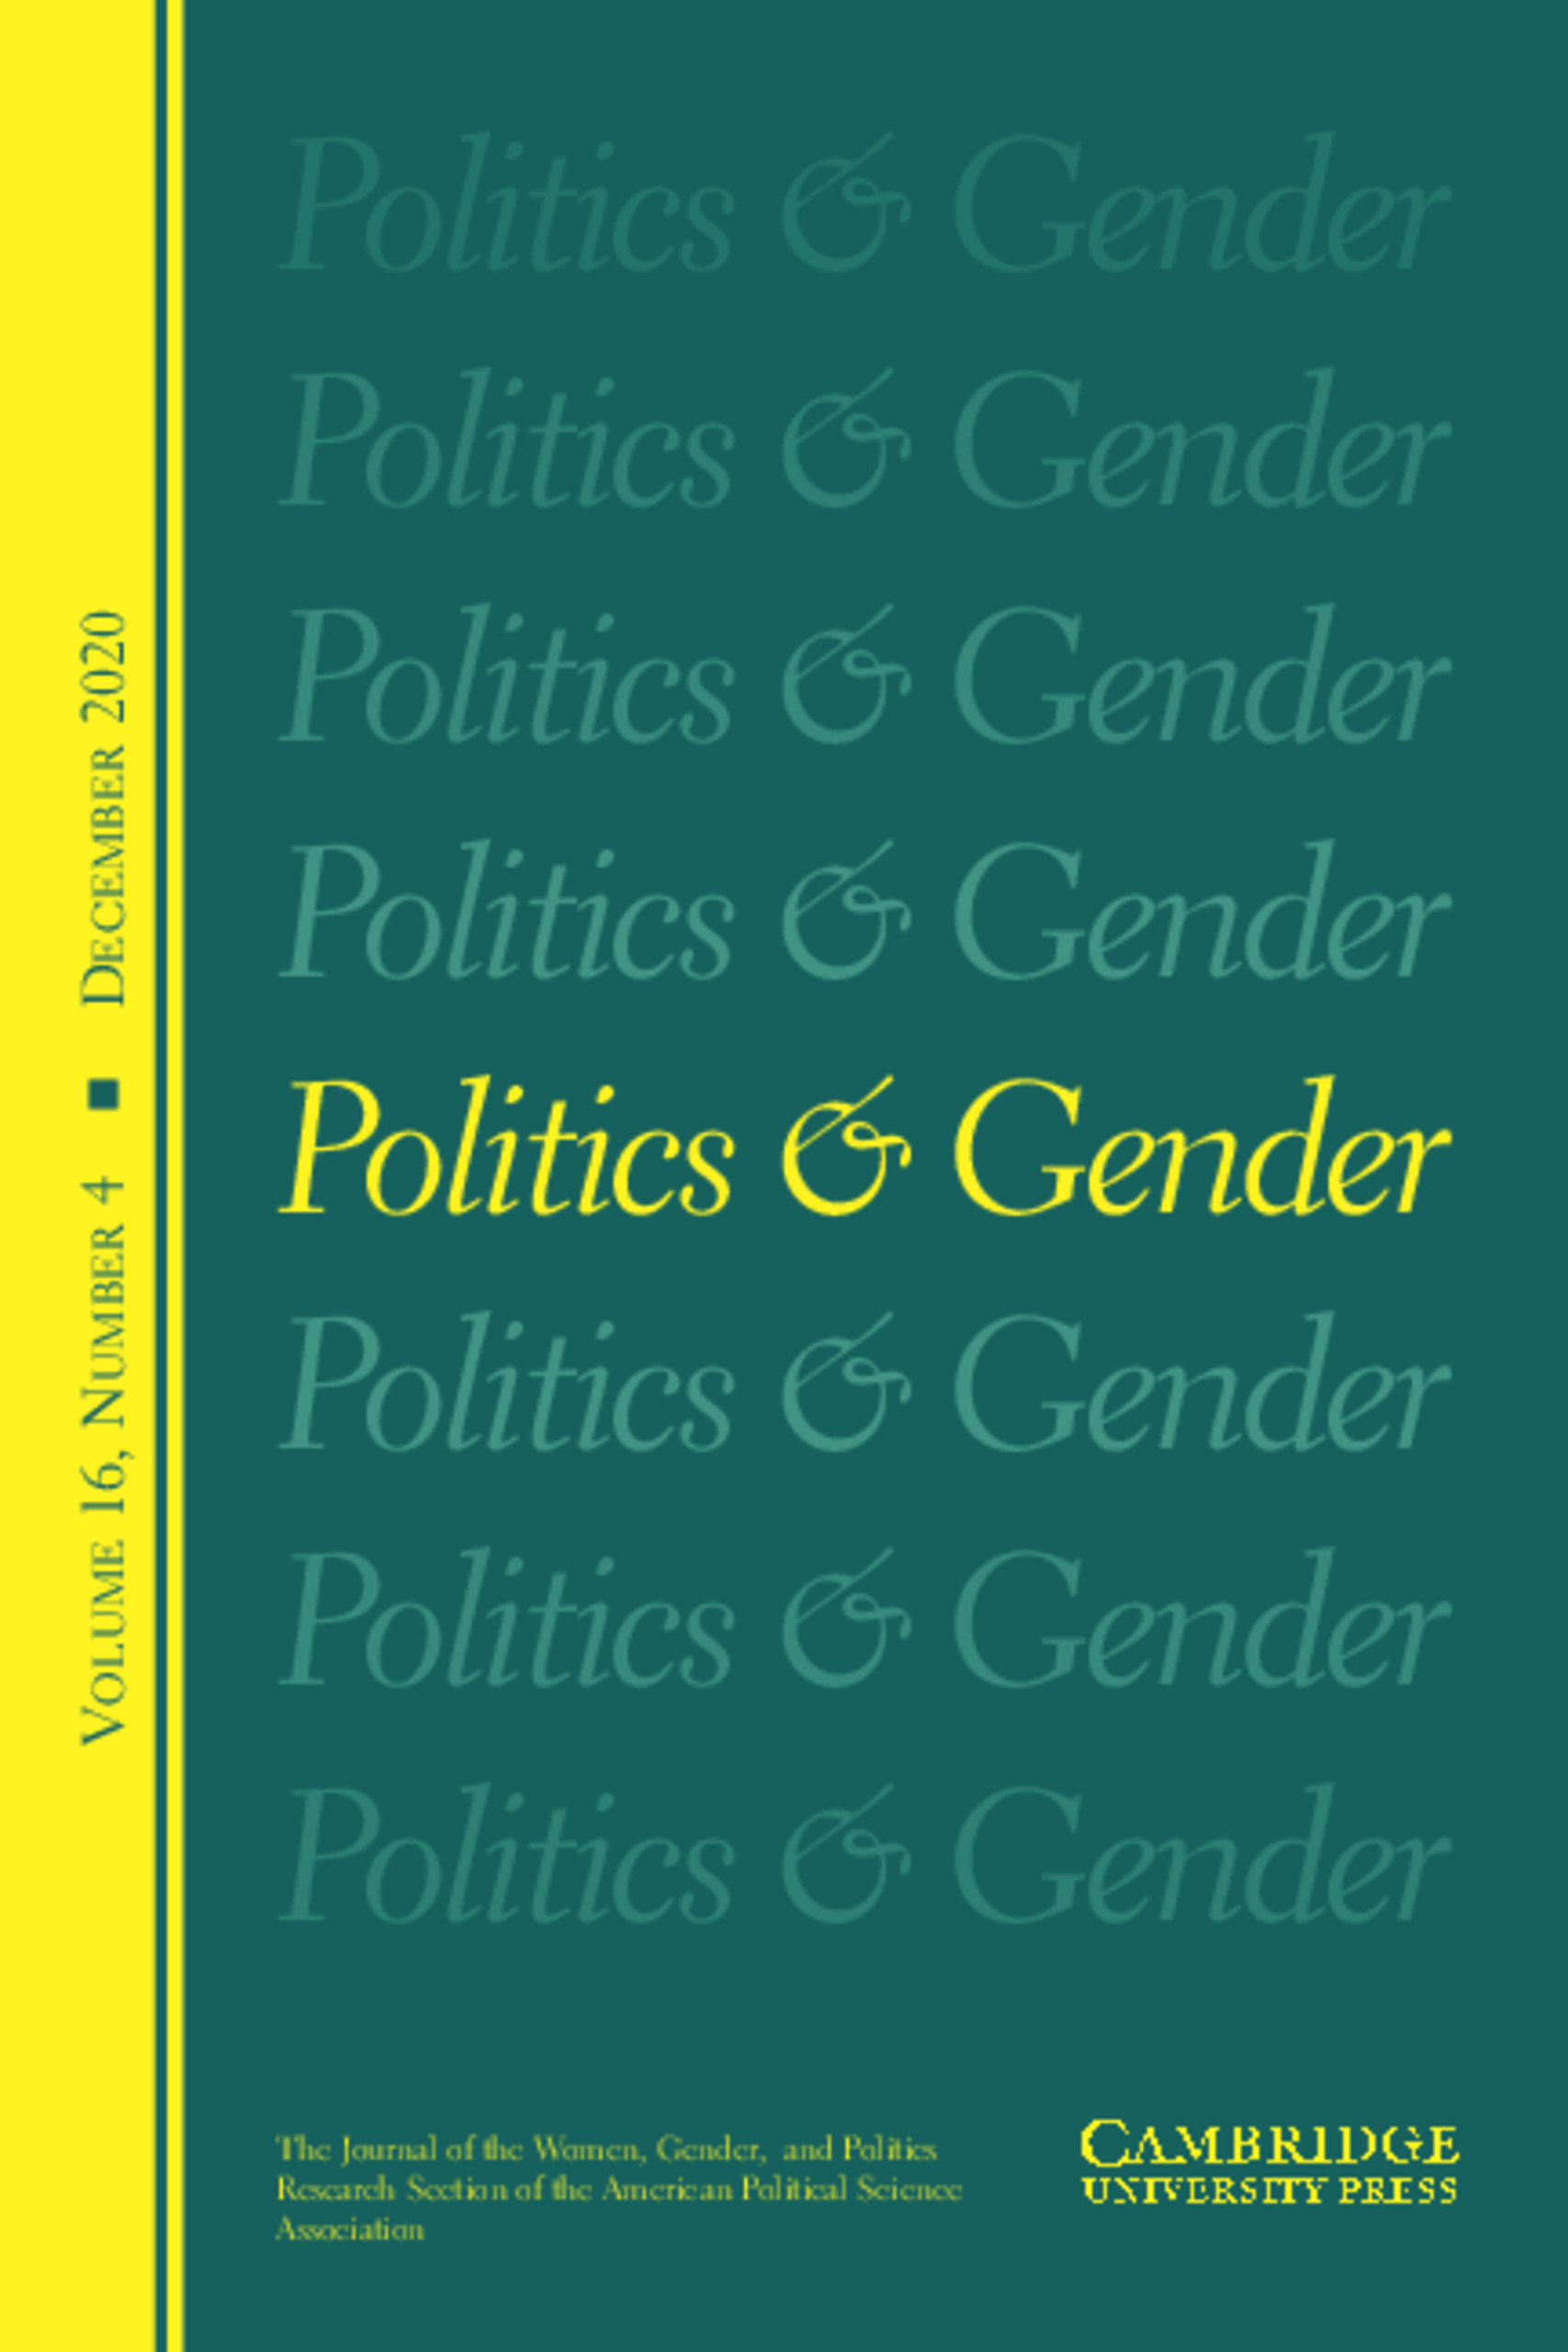 Cover image of the journal Politics & Gender, showing the title repeating 7 times in faded green font on a dark green background, the middle title in bright yellow font, yellow bar on the left side showing volume info